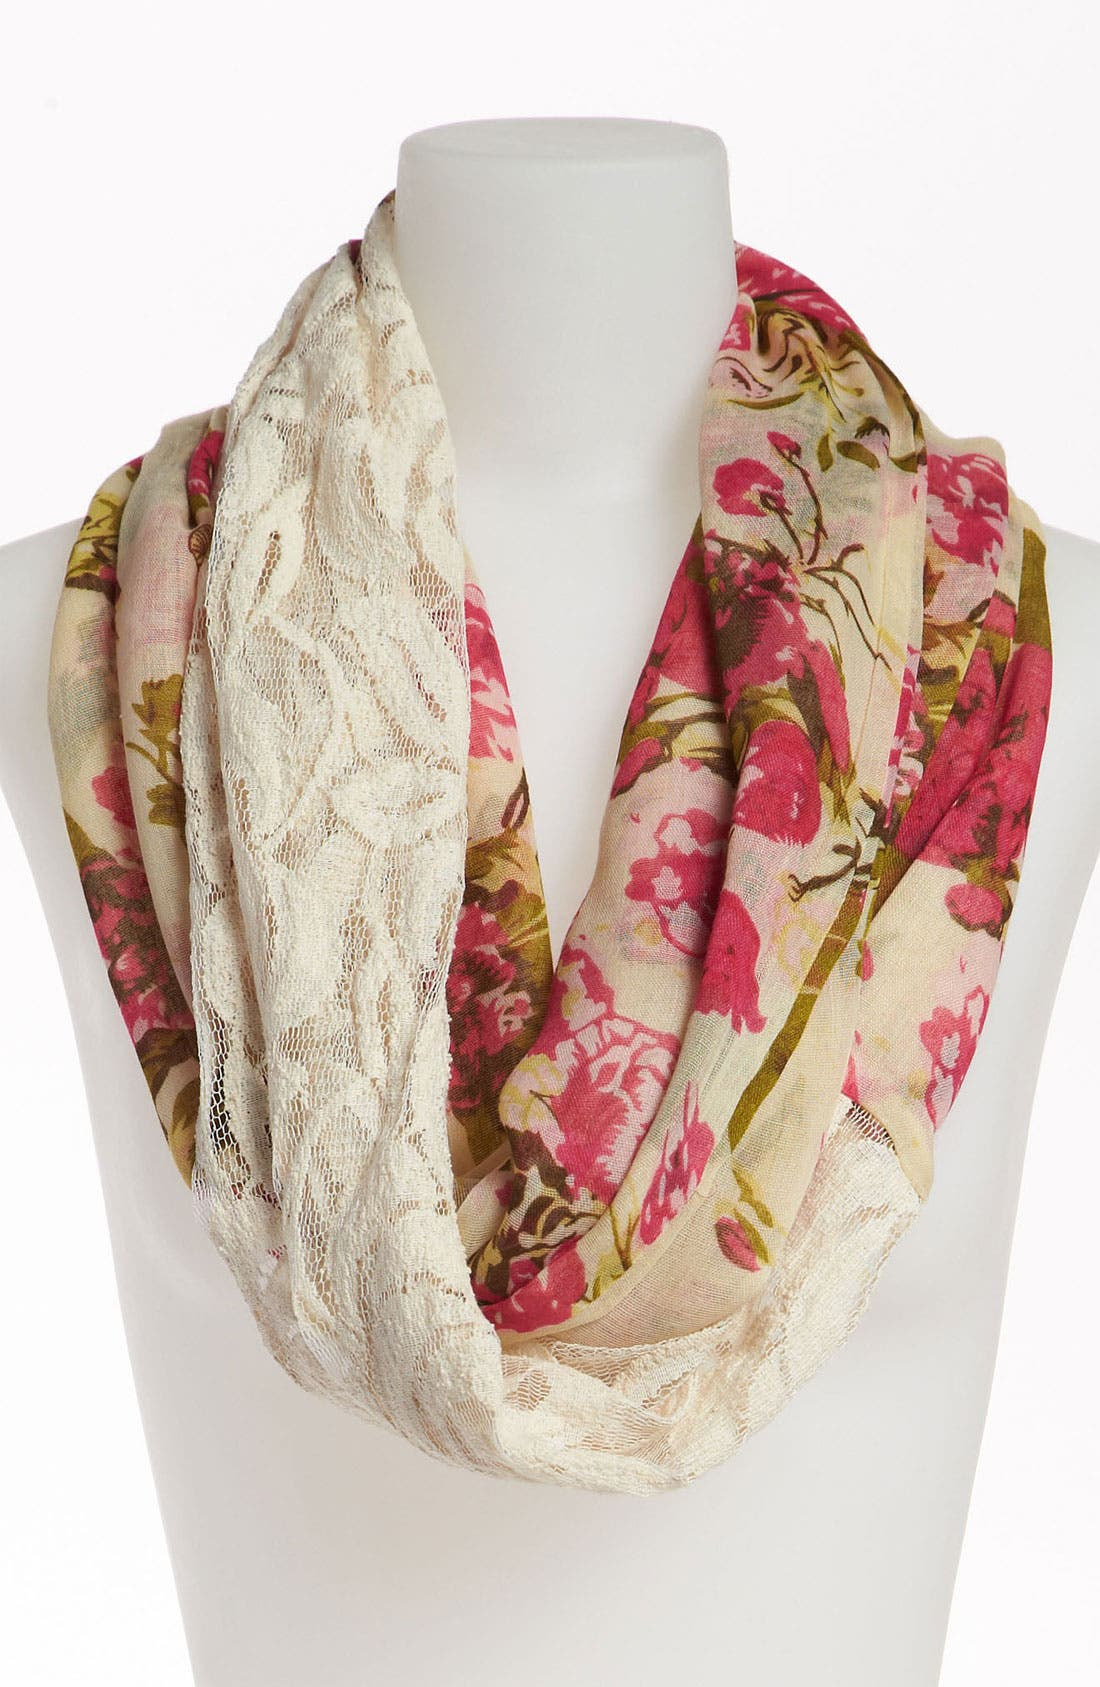 Alternate Image 1 Selected - BP. Floral Lace Infinity Scarf